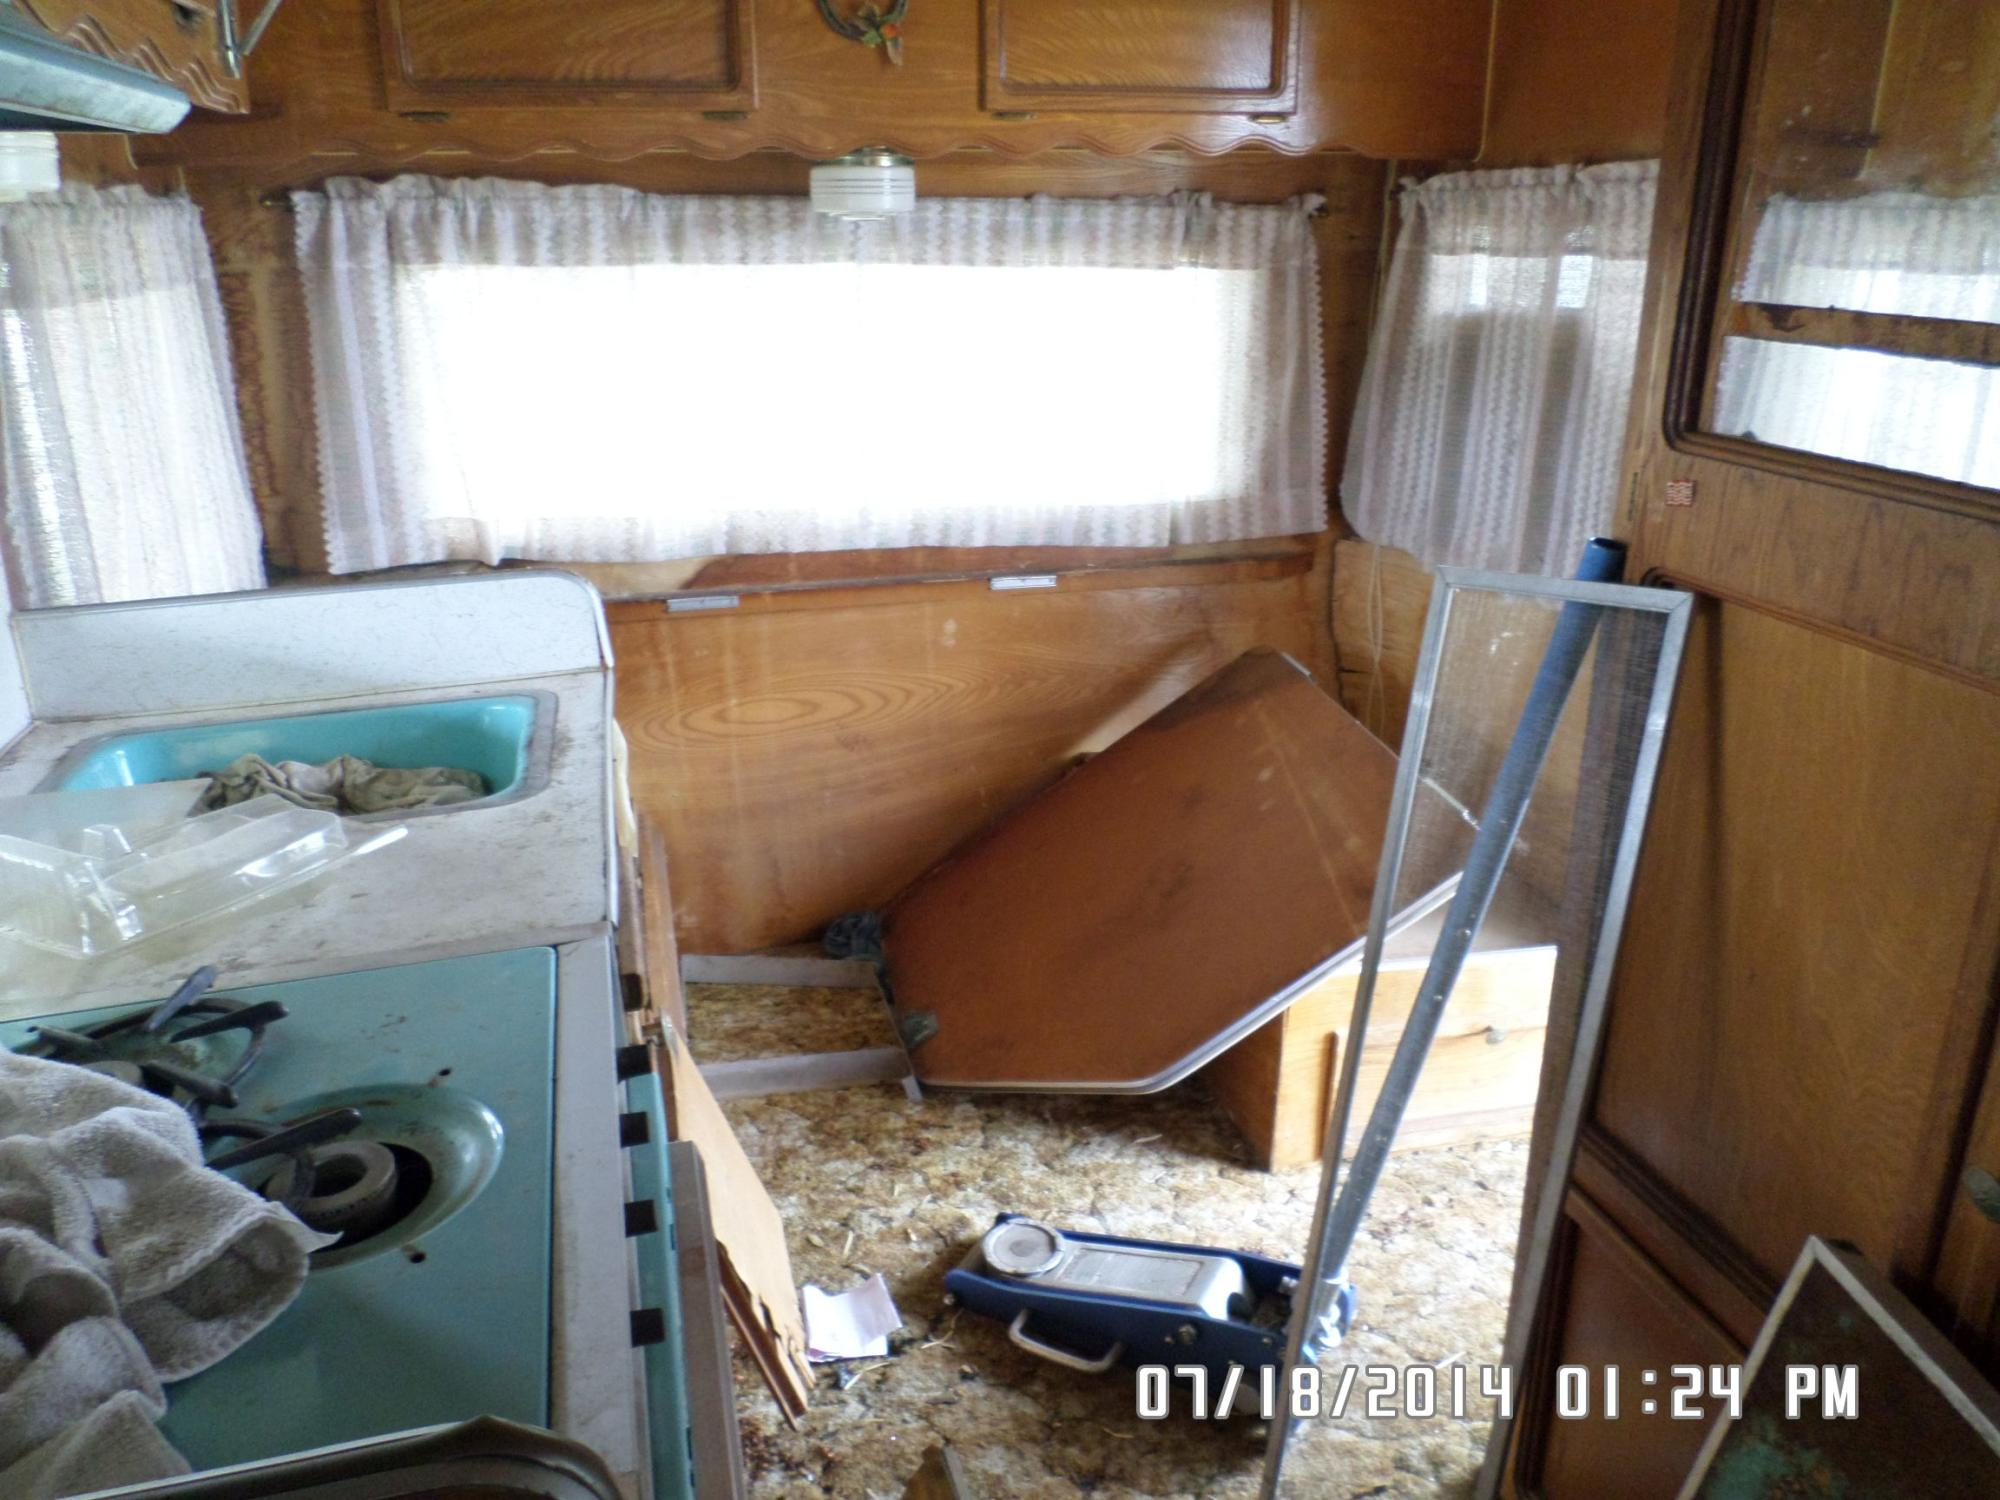 From Exterior Paint And Accessories To Interior Customization Decorating The Result Is A Vintage Camper With That Perfect Blend Of Old Meets New